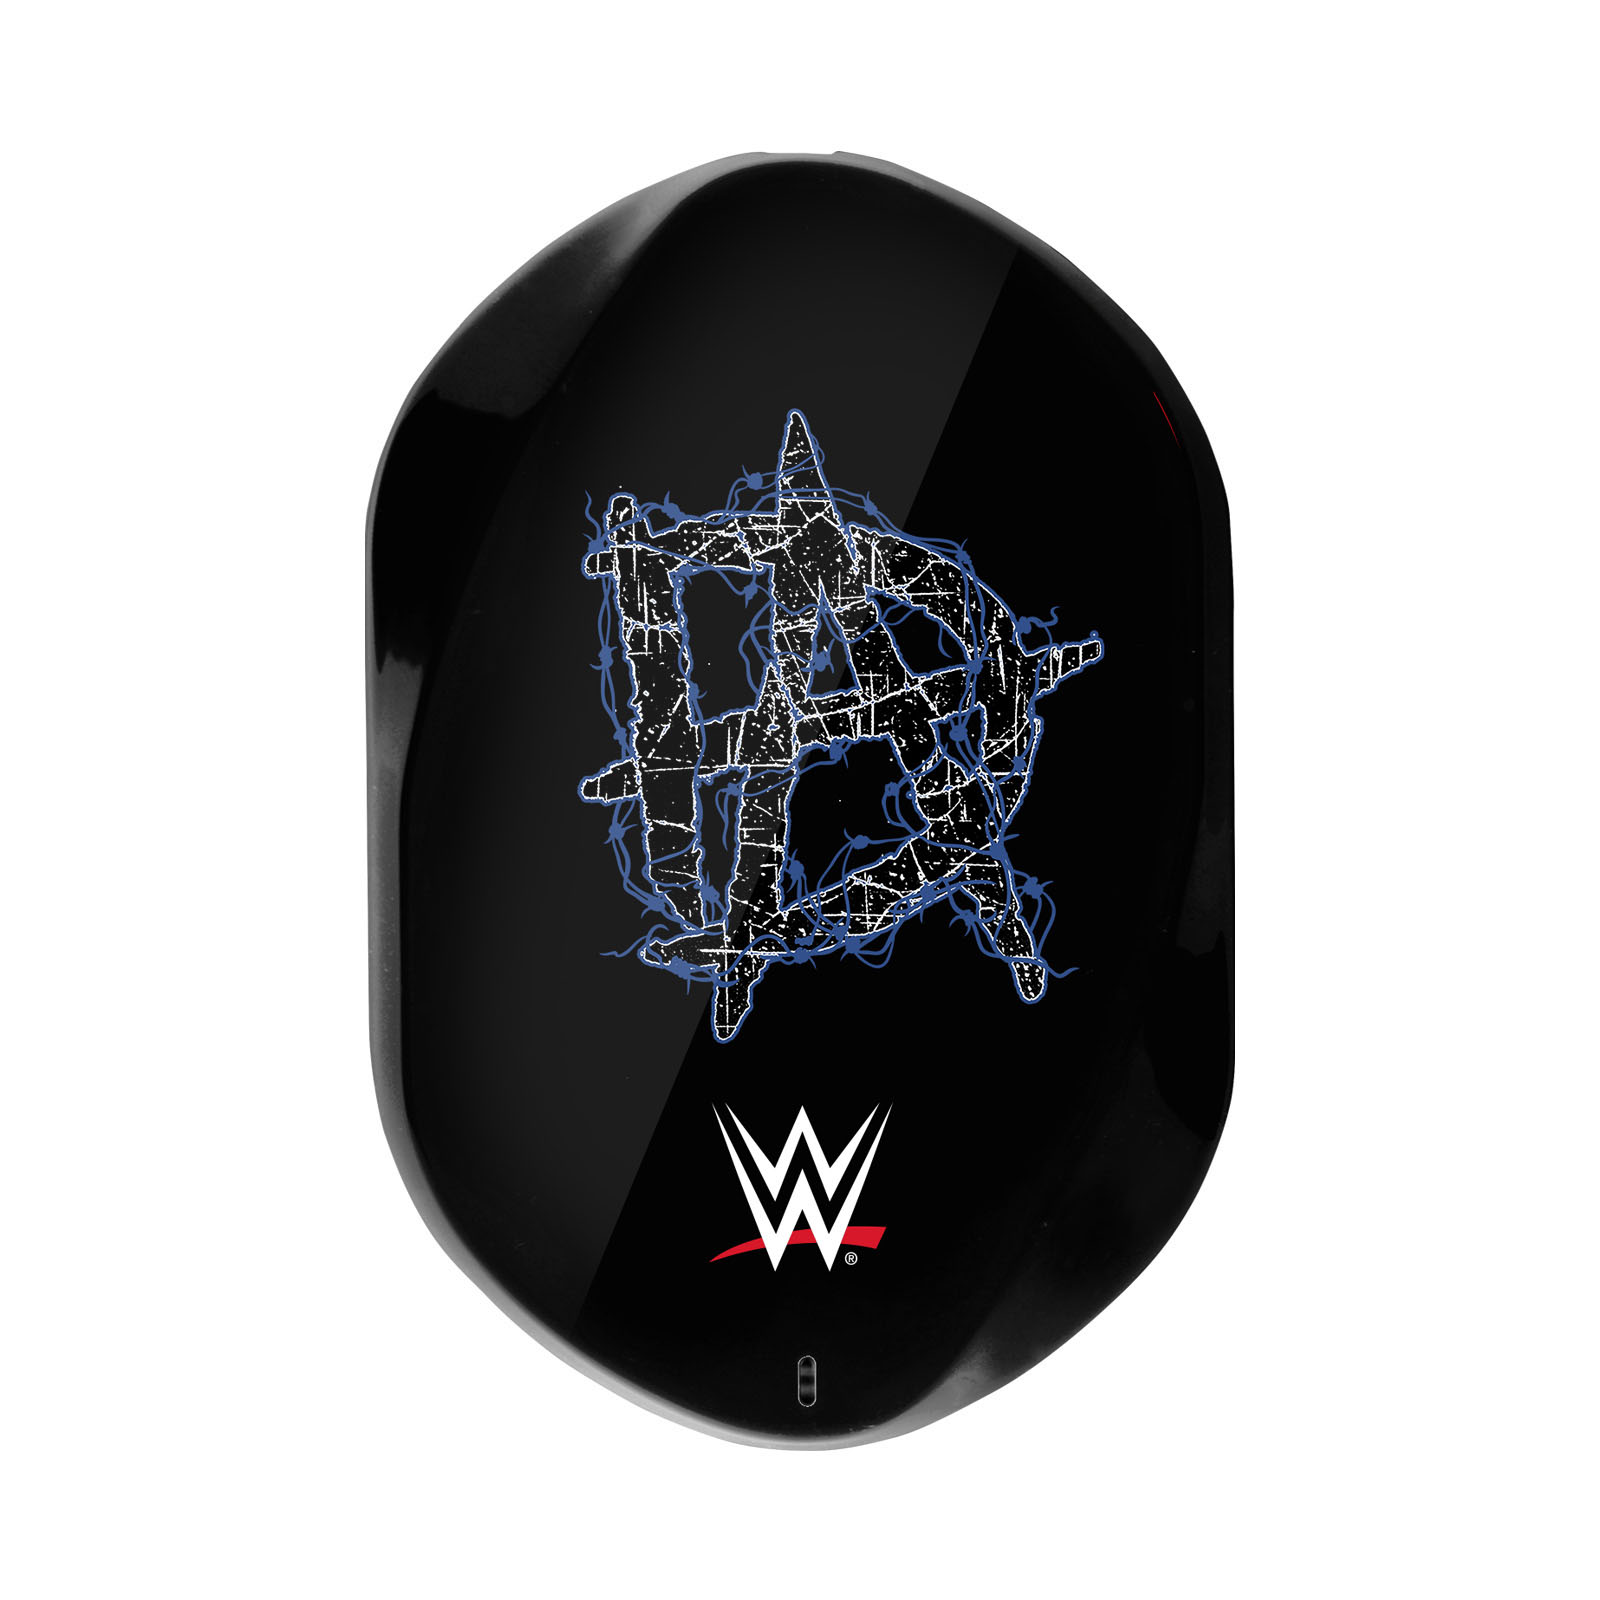 OFFICIAL-WWE-SUPERSTARS-GRAPHIC-BLACK-QI-FAST-WIRELESS-CHARGER thumbnail 6